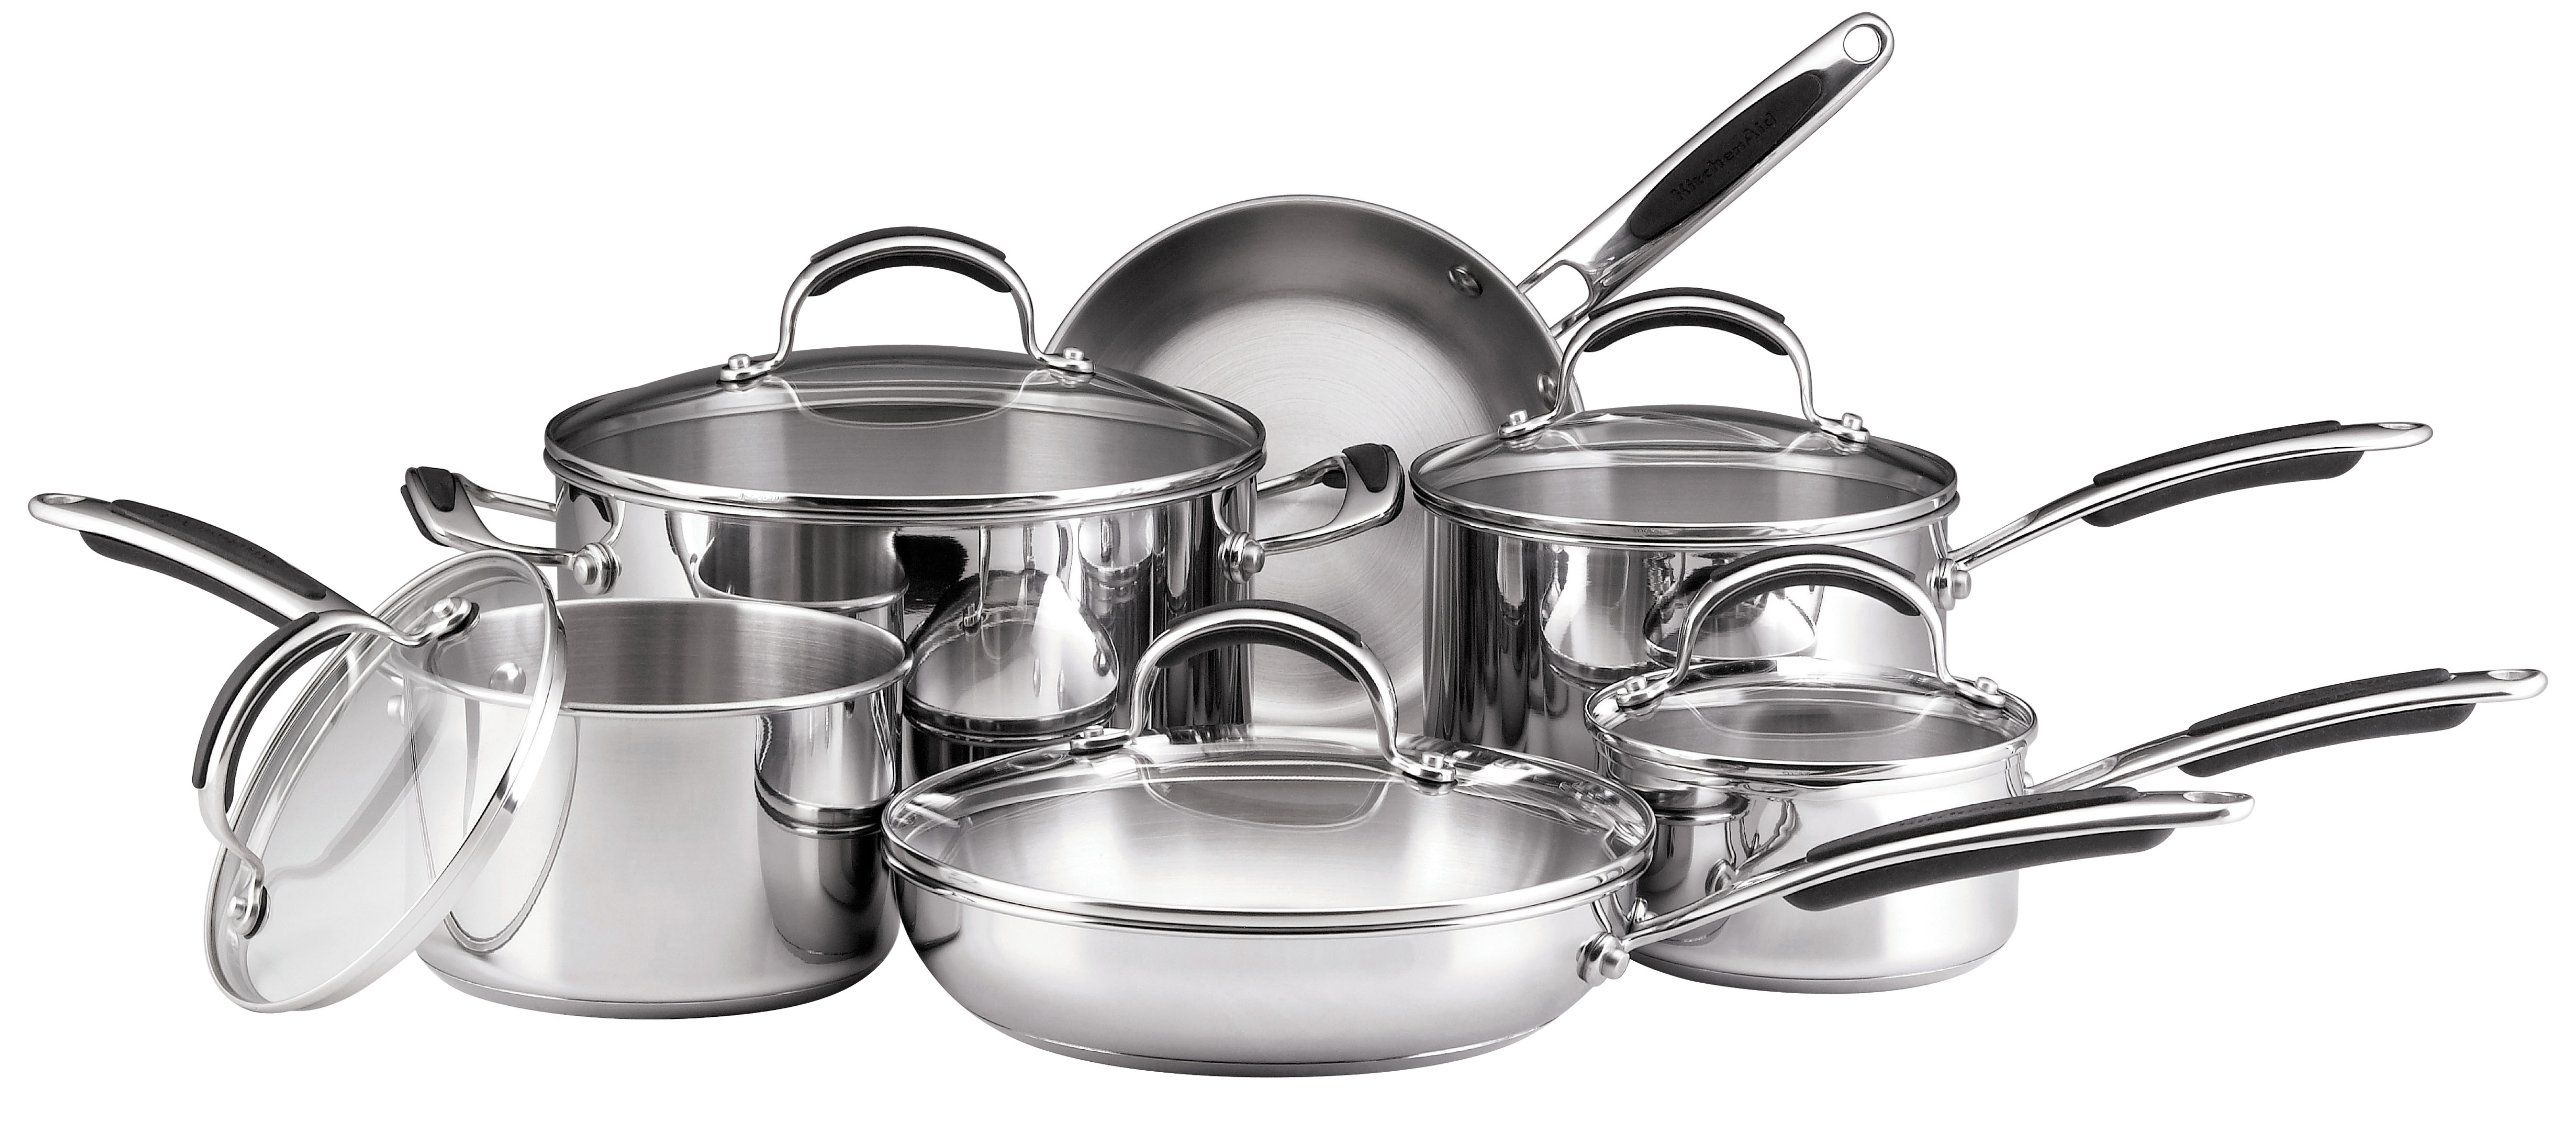 Kitchenaid Cookware Set Stainless Steel 11 Piece Amazon